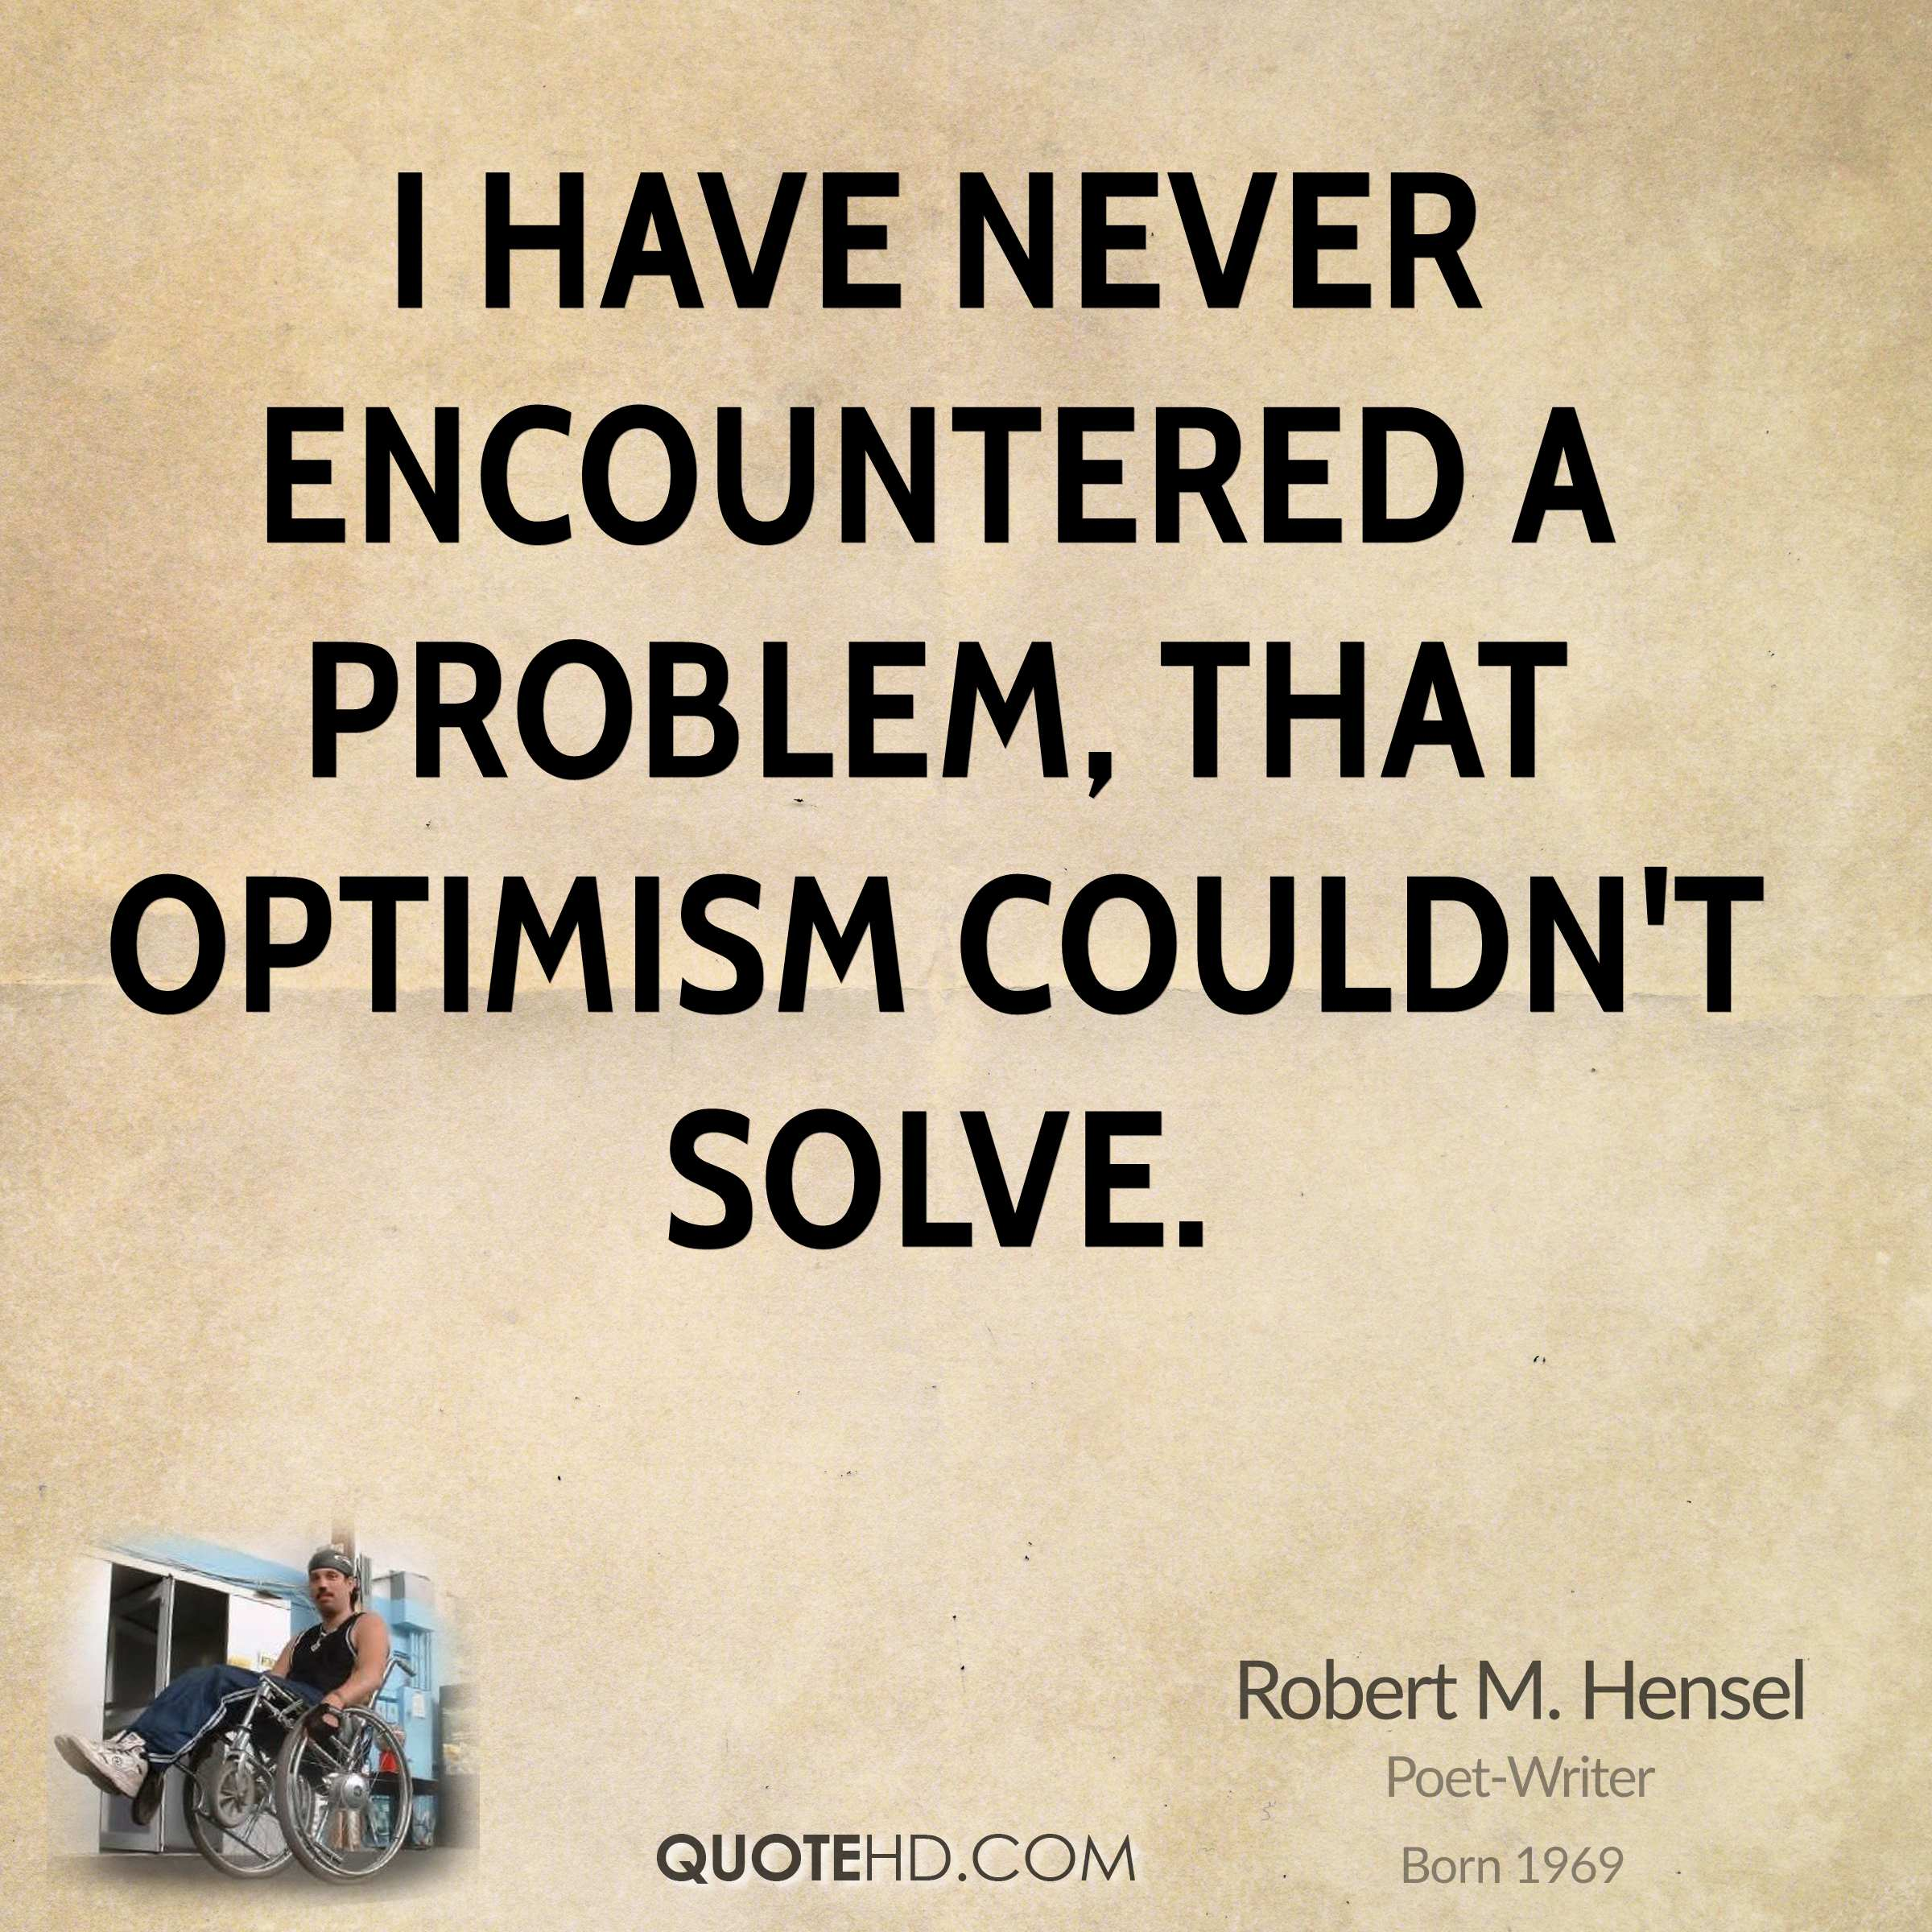 Quotes About Optimism 62 All Time Best Optimism Quotes And Sayings